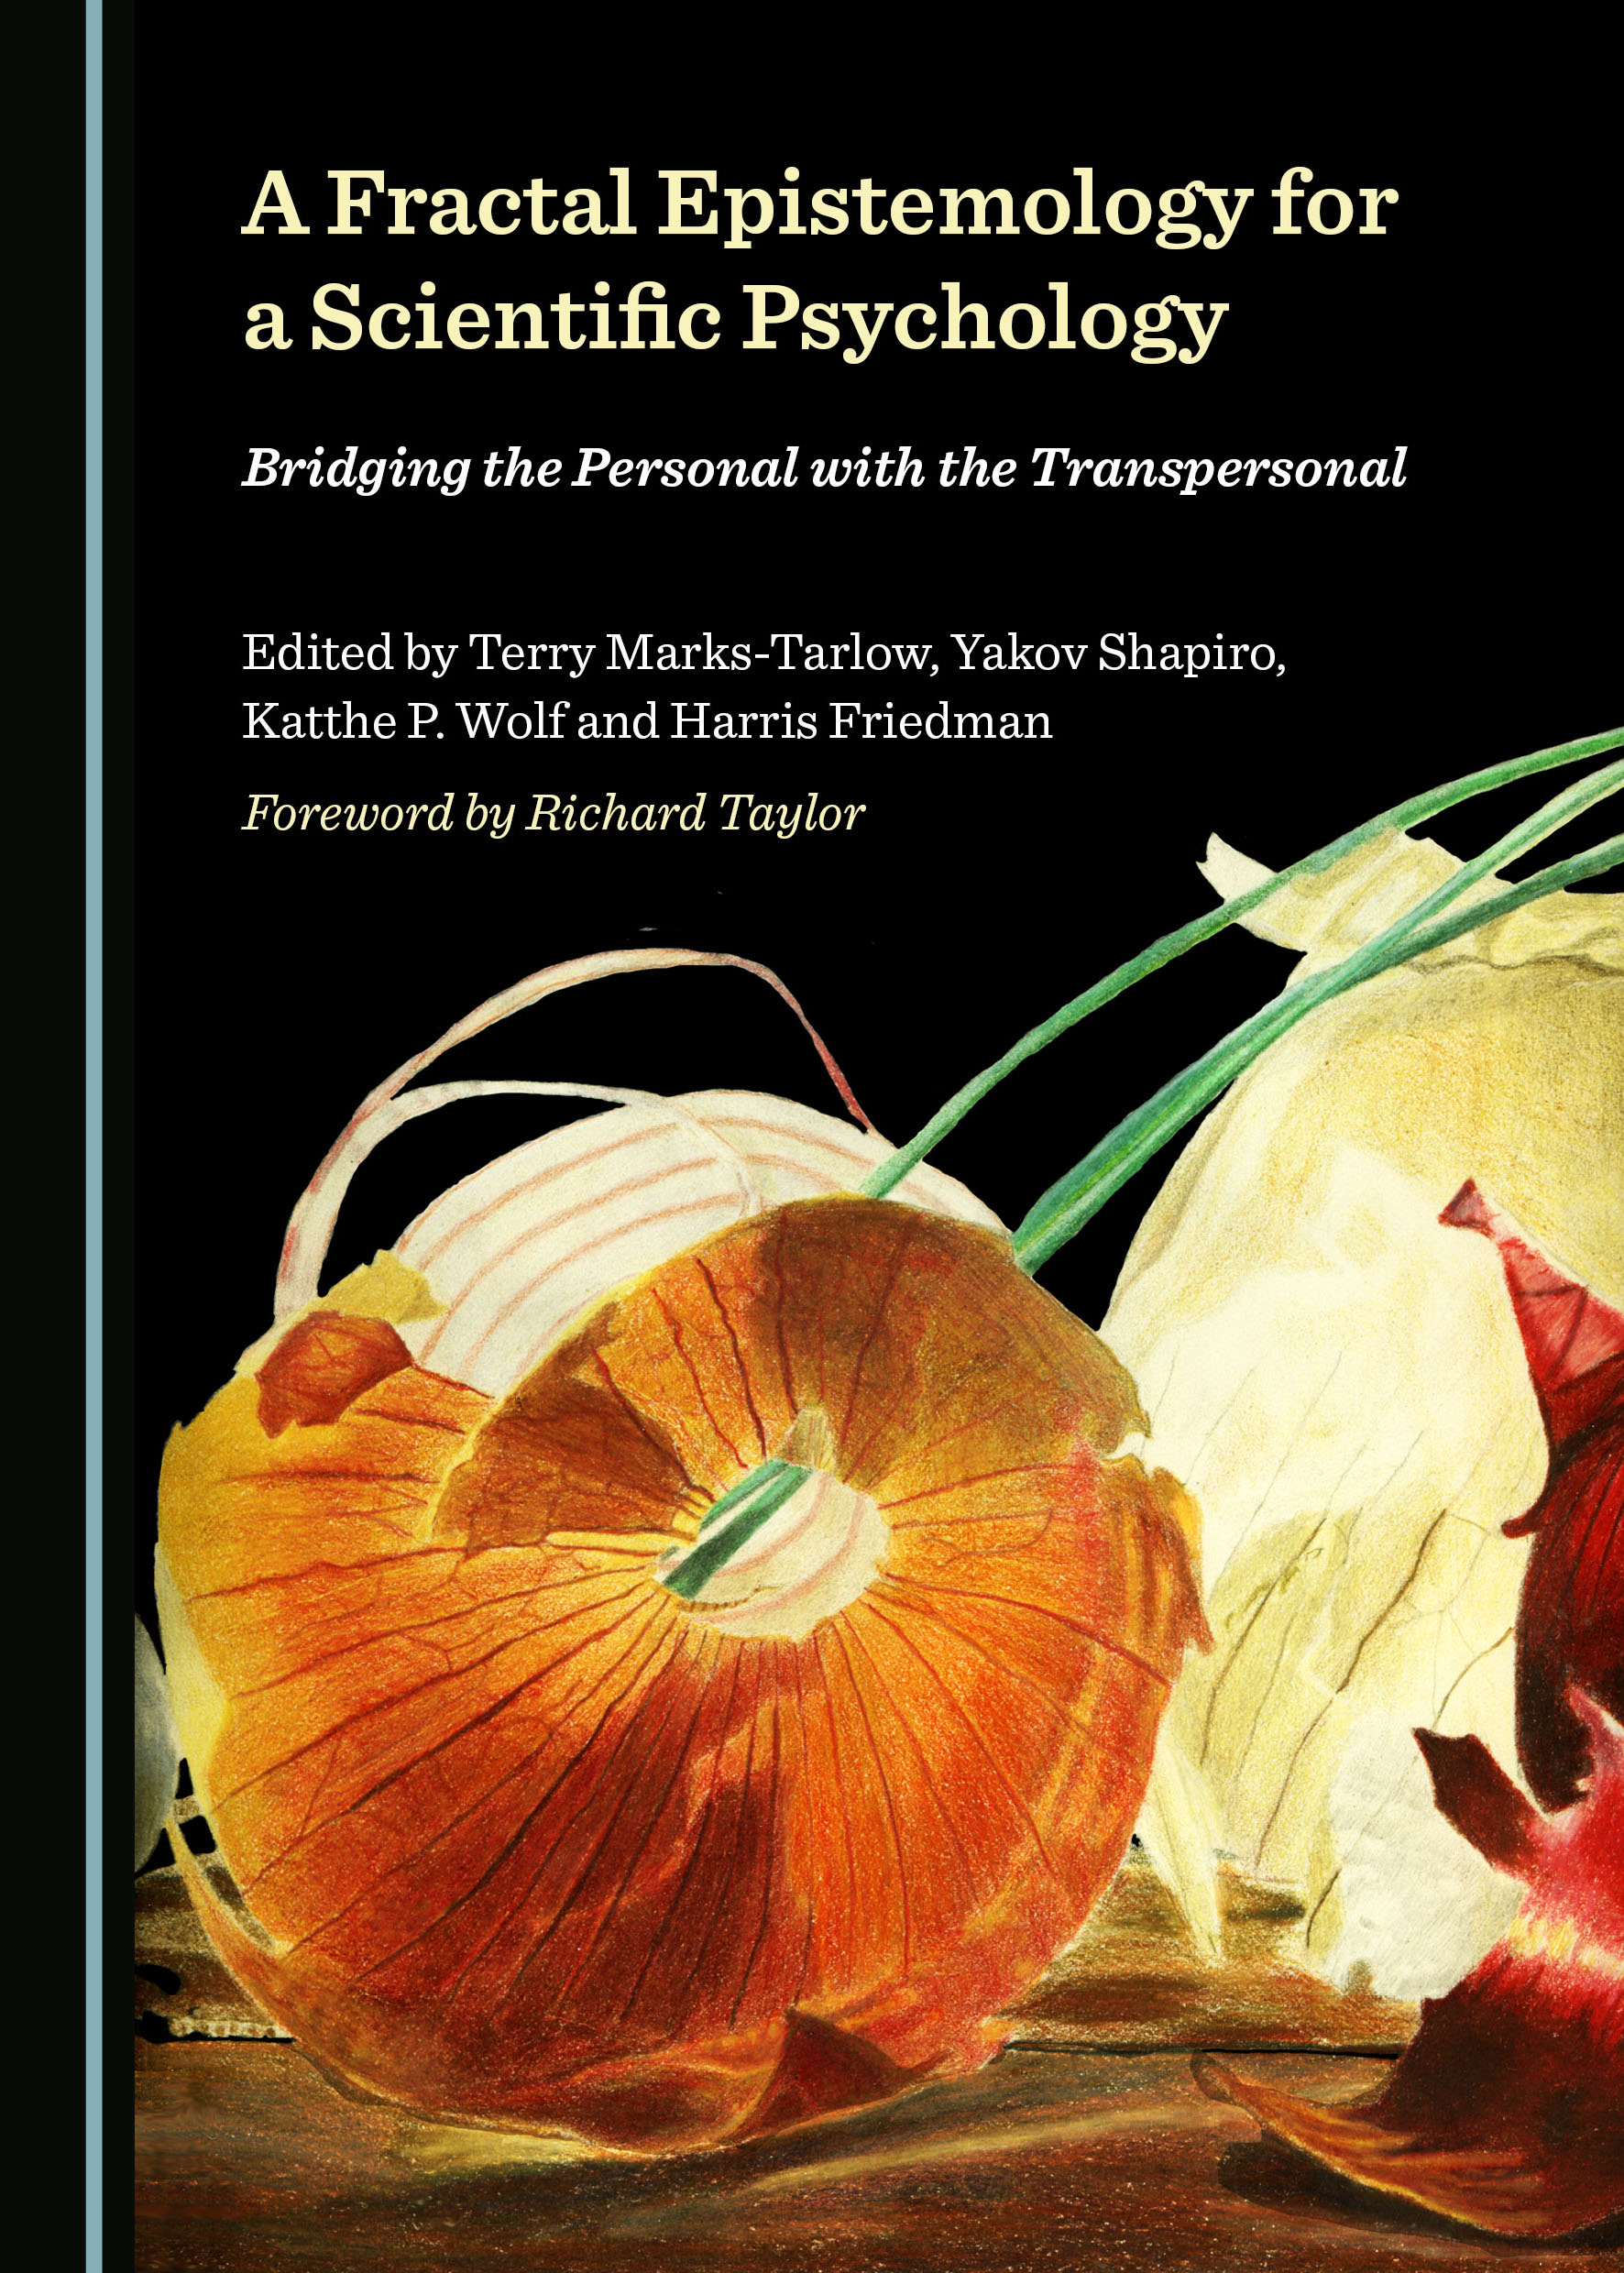 A Fractal Epistemology for a Scientific Psychology: Bridging the Personal with the Transpersonal